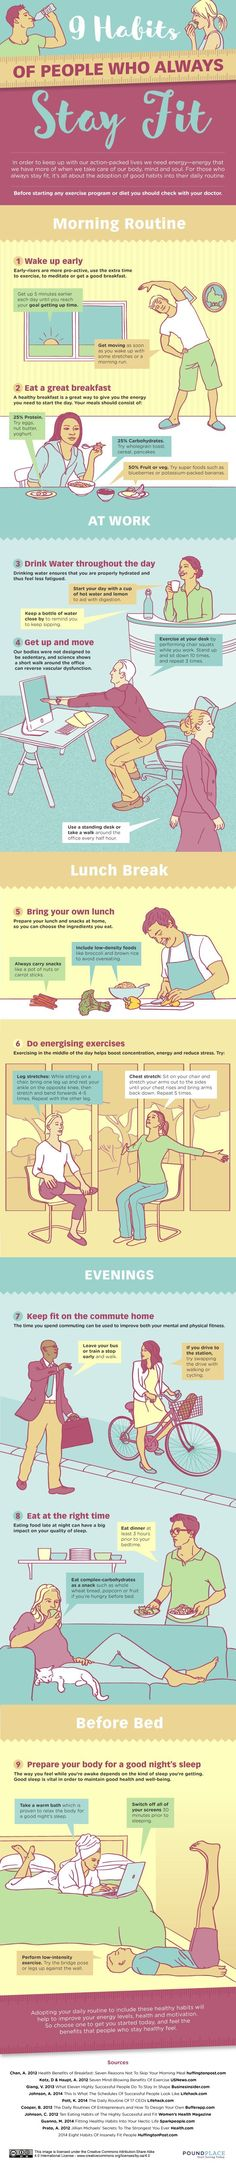 9 Habits of People Who Stay Fit